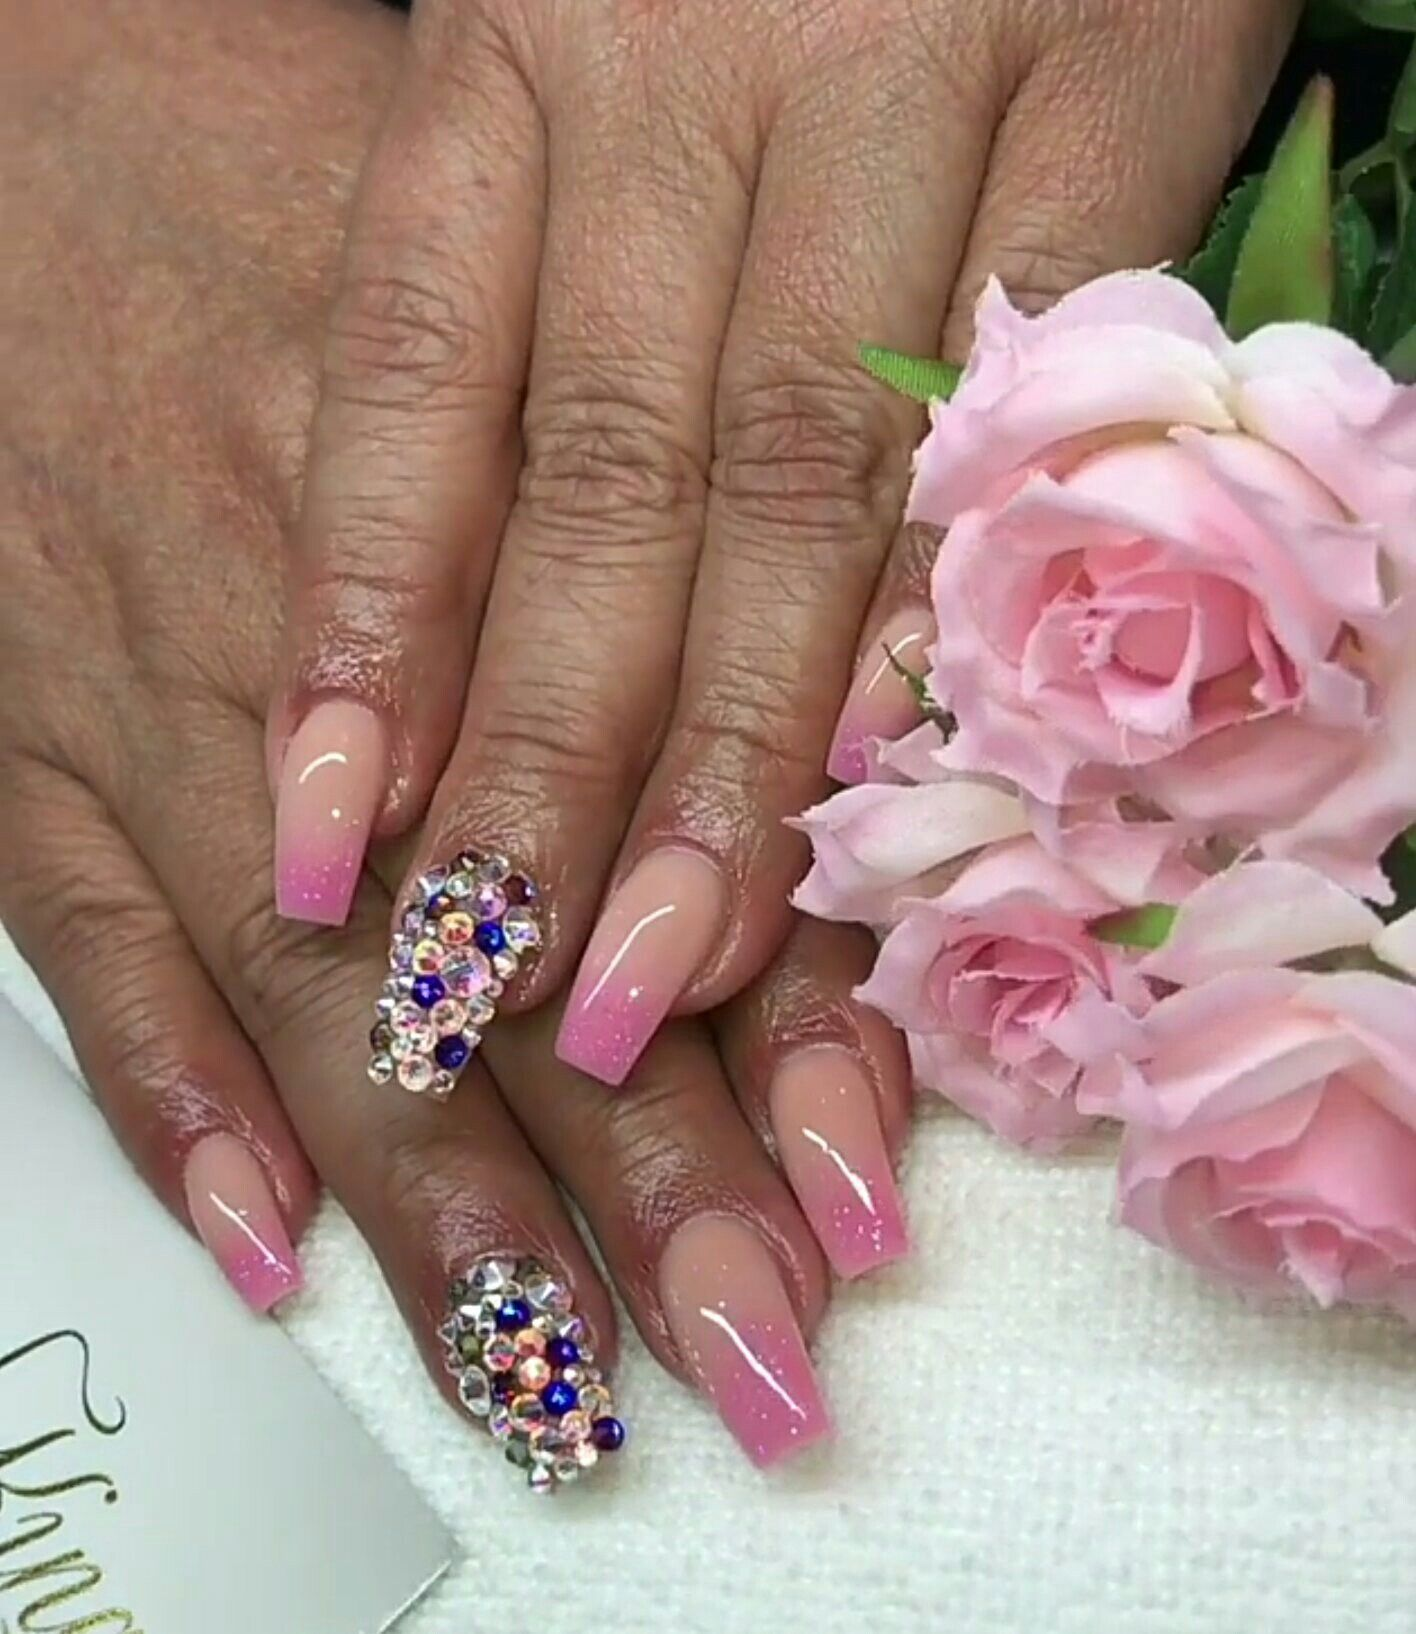 Pink coffin nails with jewels | Nails | Pinterest | Coffin nails